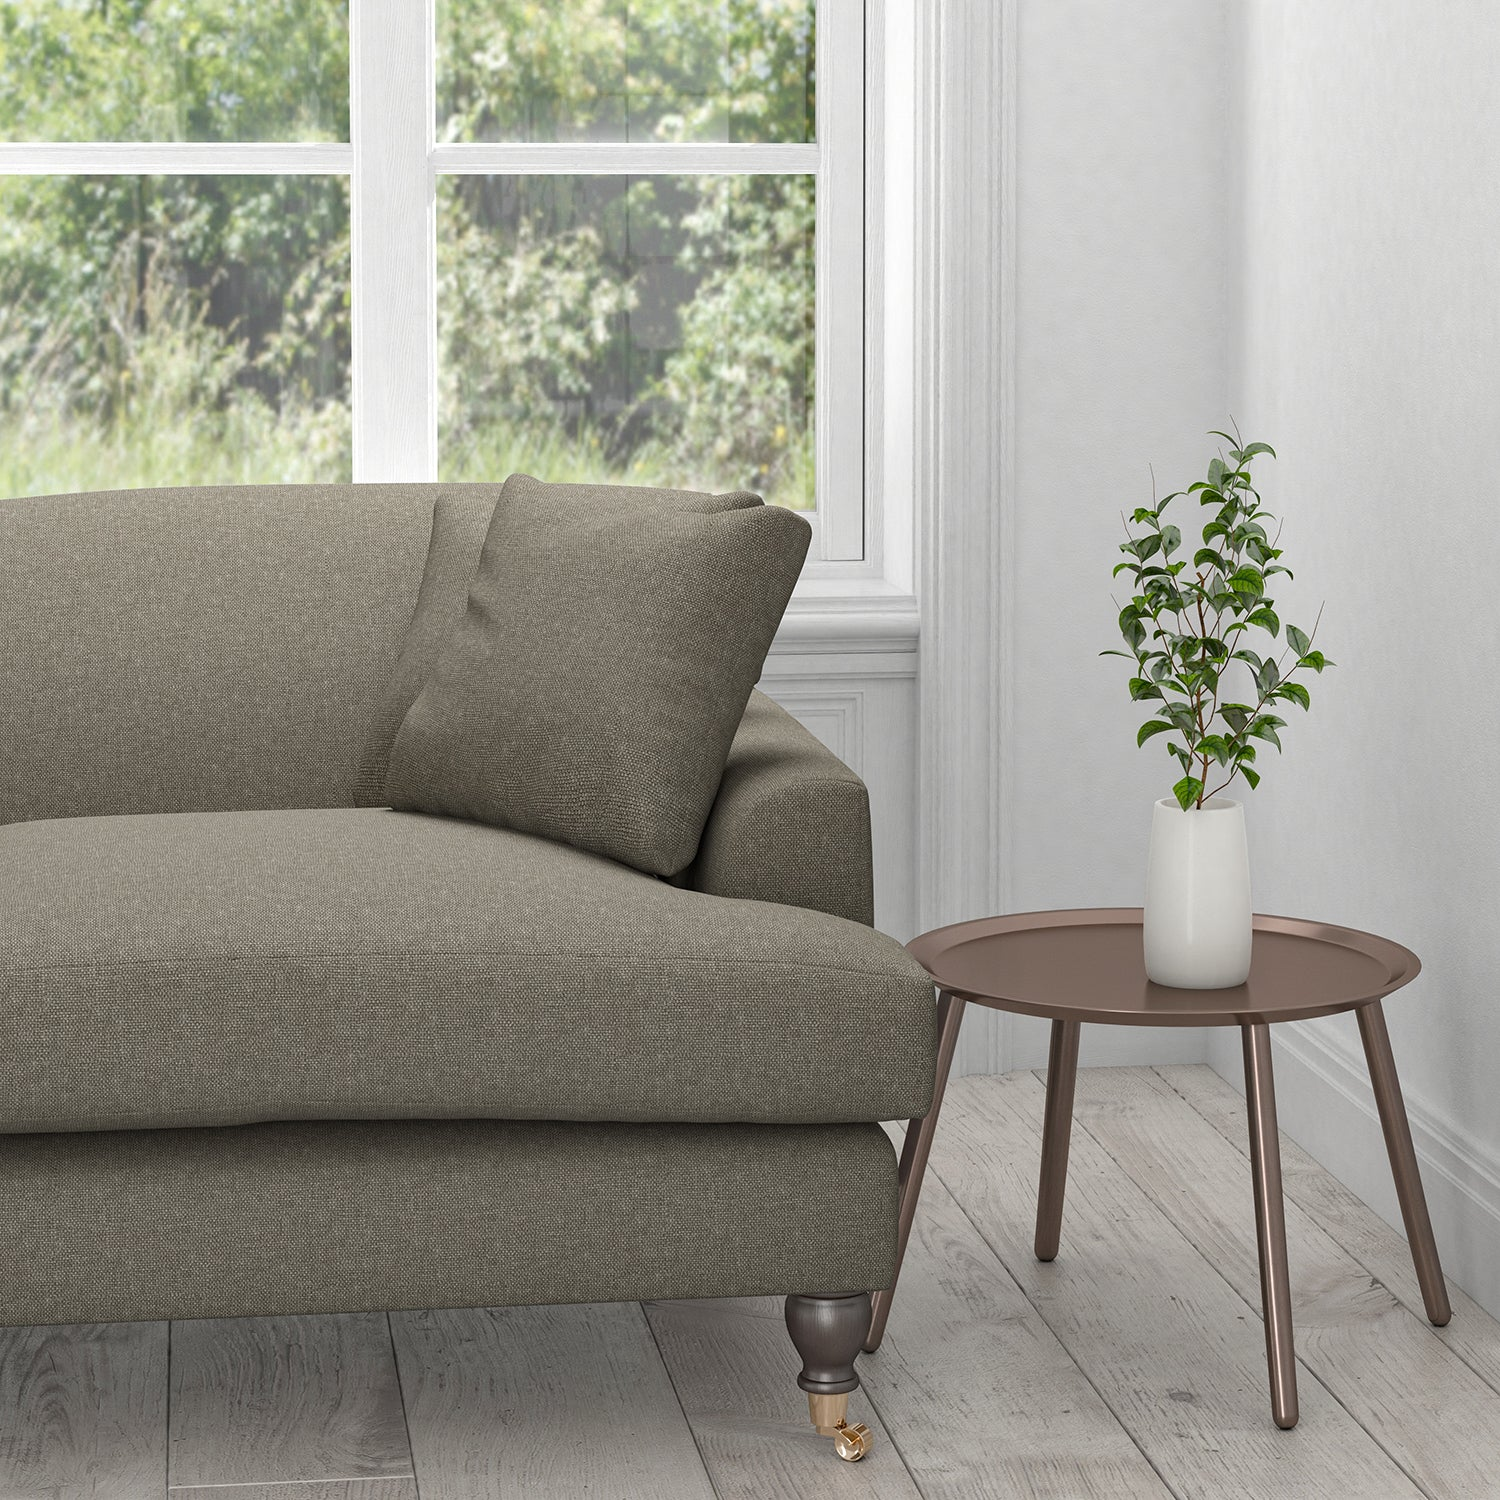 Sofa in a taupe coloured stain resistant fabric for curtains and upholstery